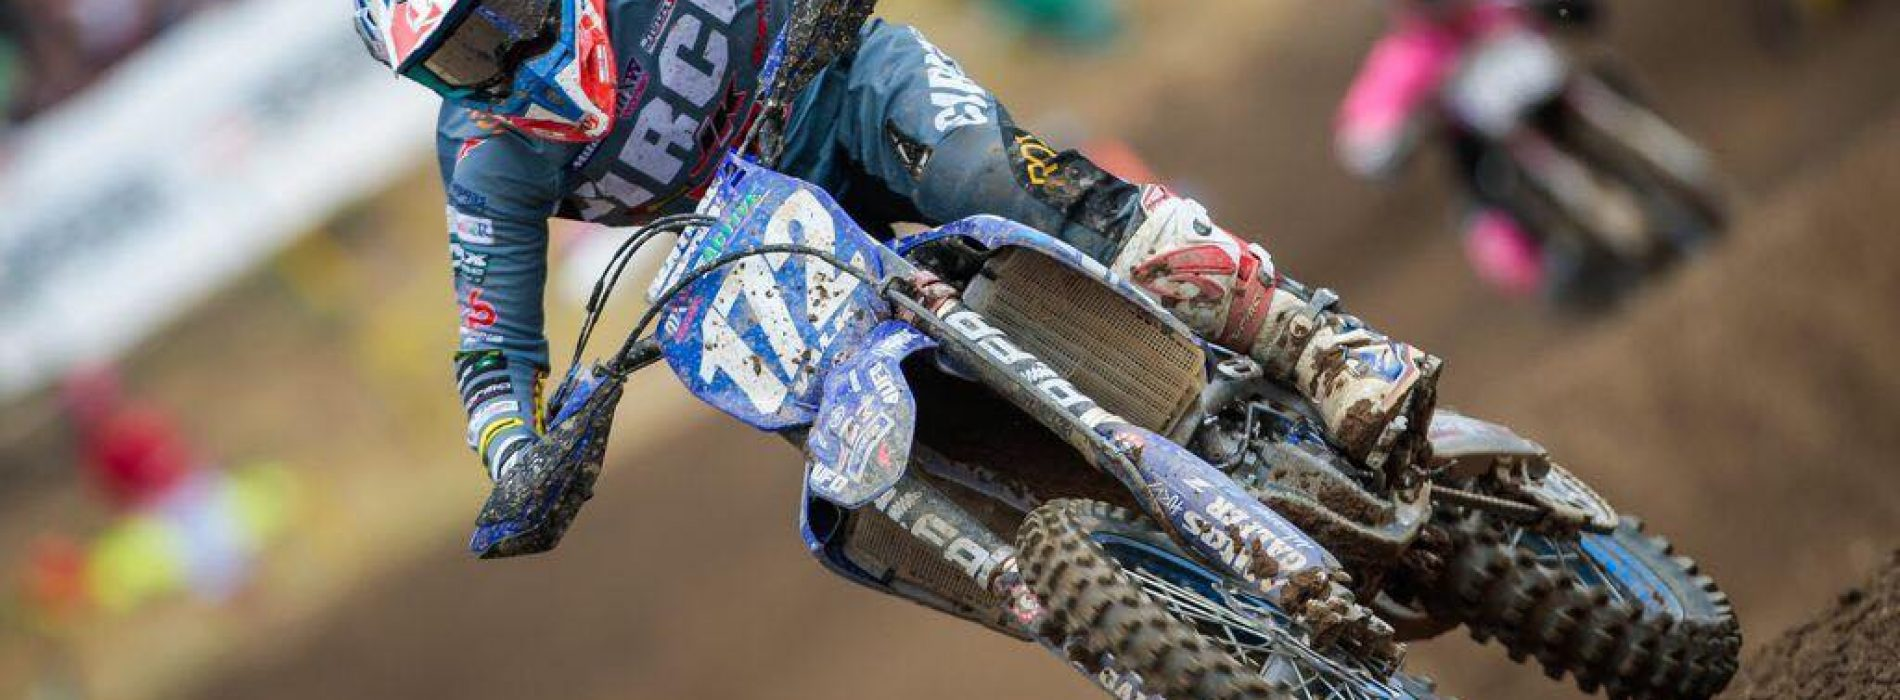 Lynn Valk- now so close to Top 5 in WMX at 16 years of age!